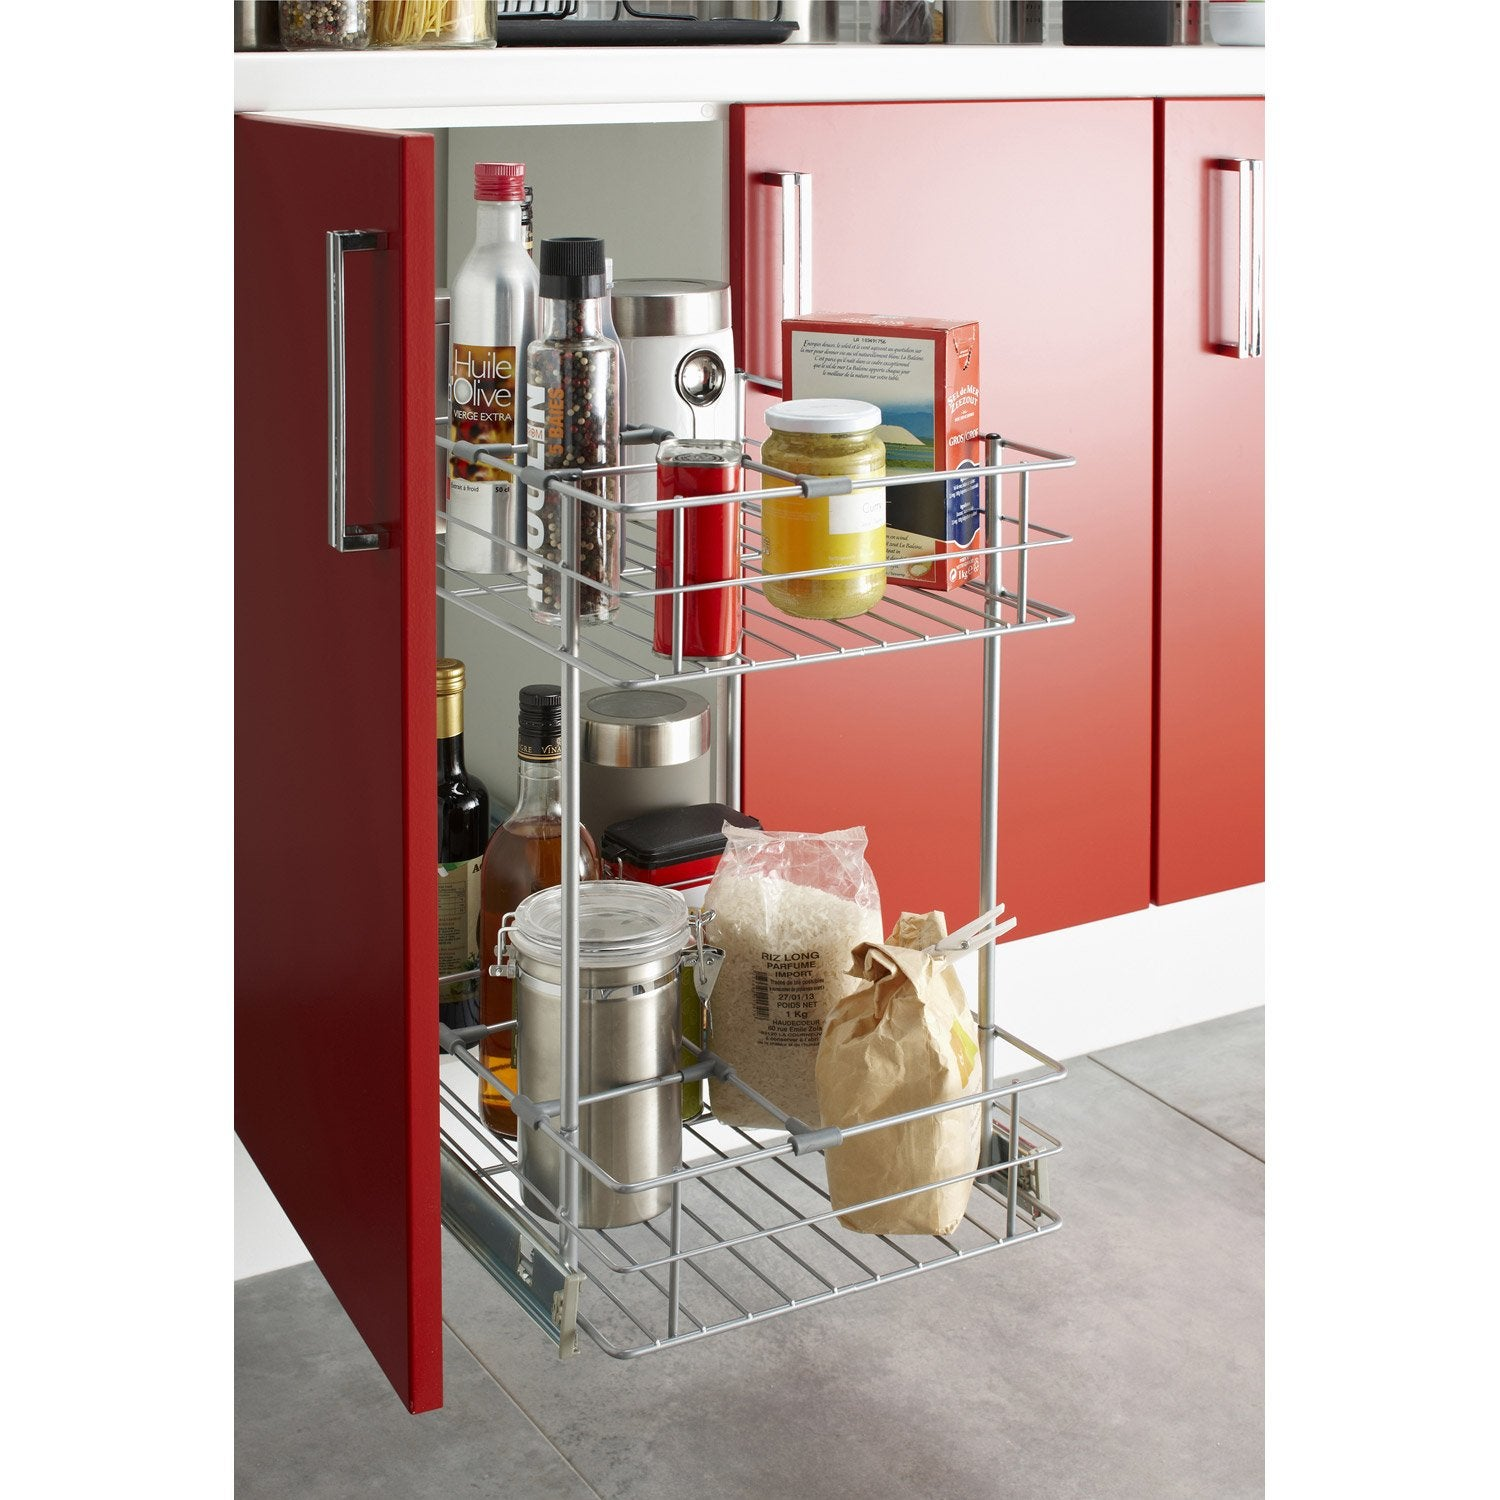 Amenagement placard de cuisine ikea acc pictures to pin on - Amenagement cuisine castorama ...